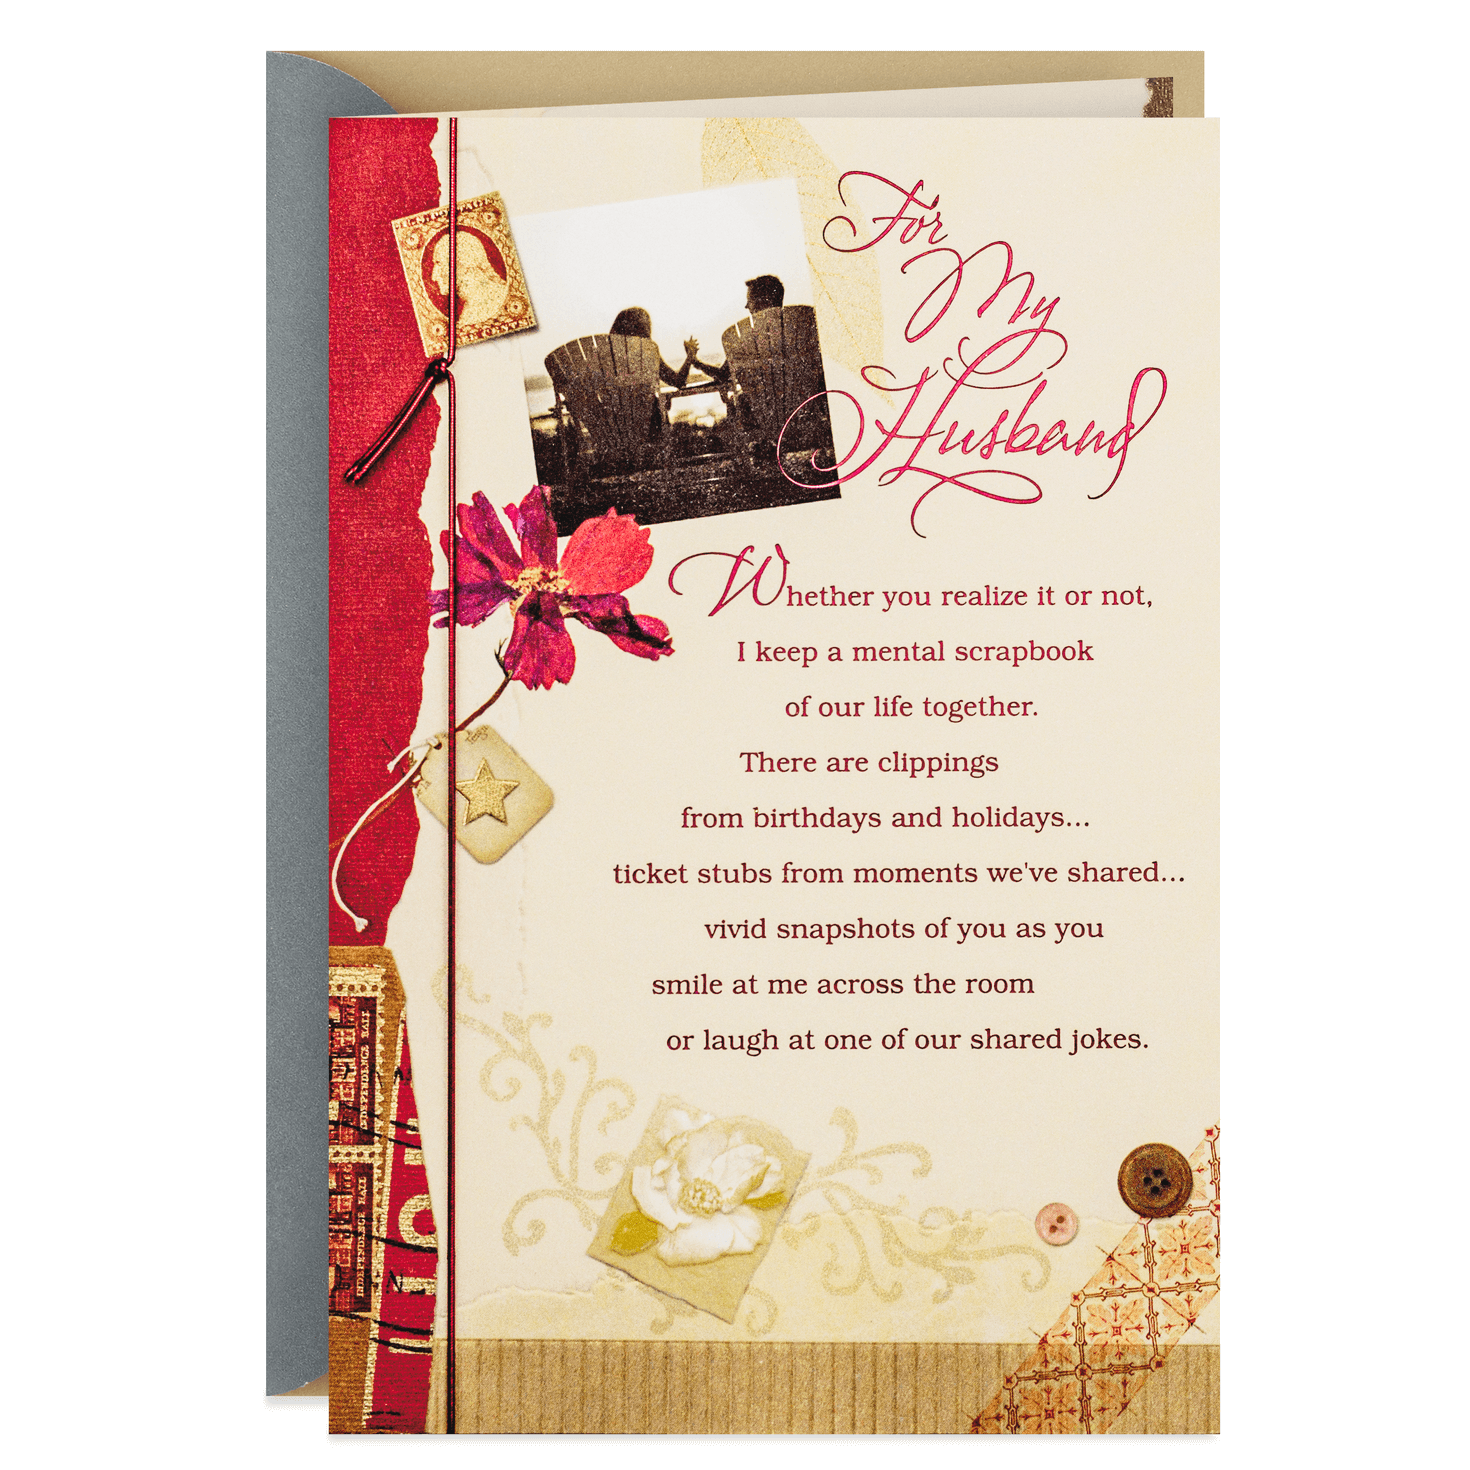 Scrapbook Of Memories Anniversary Card For Husband